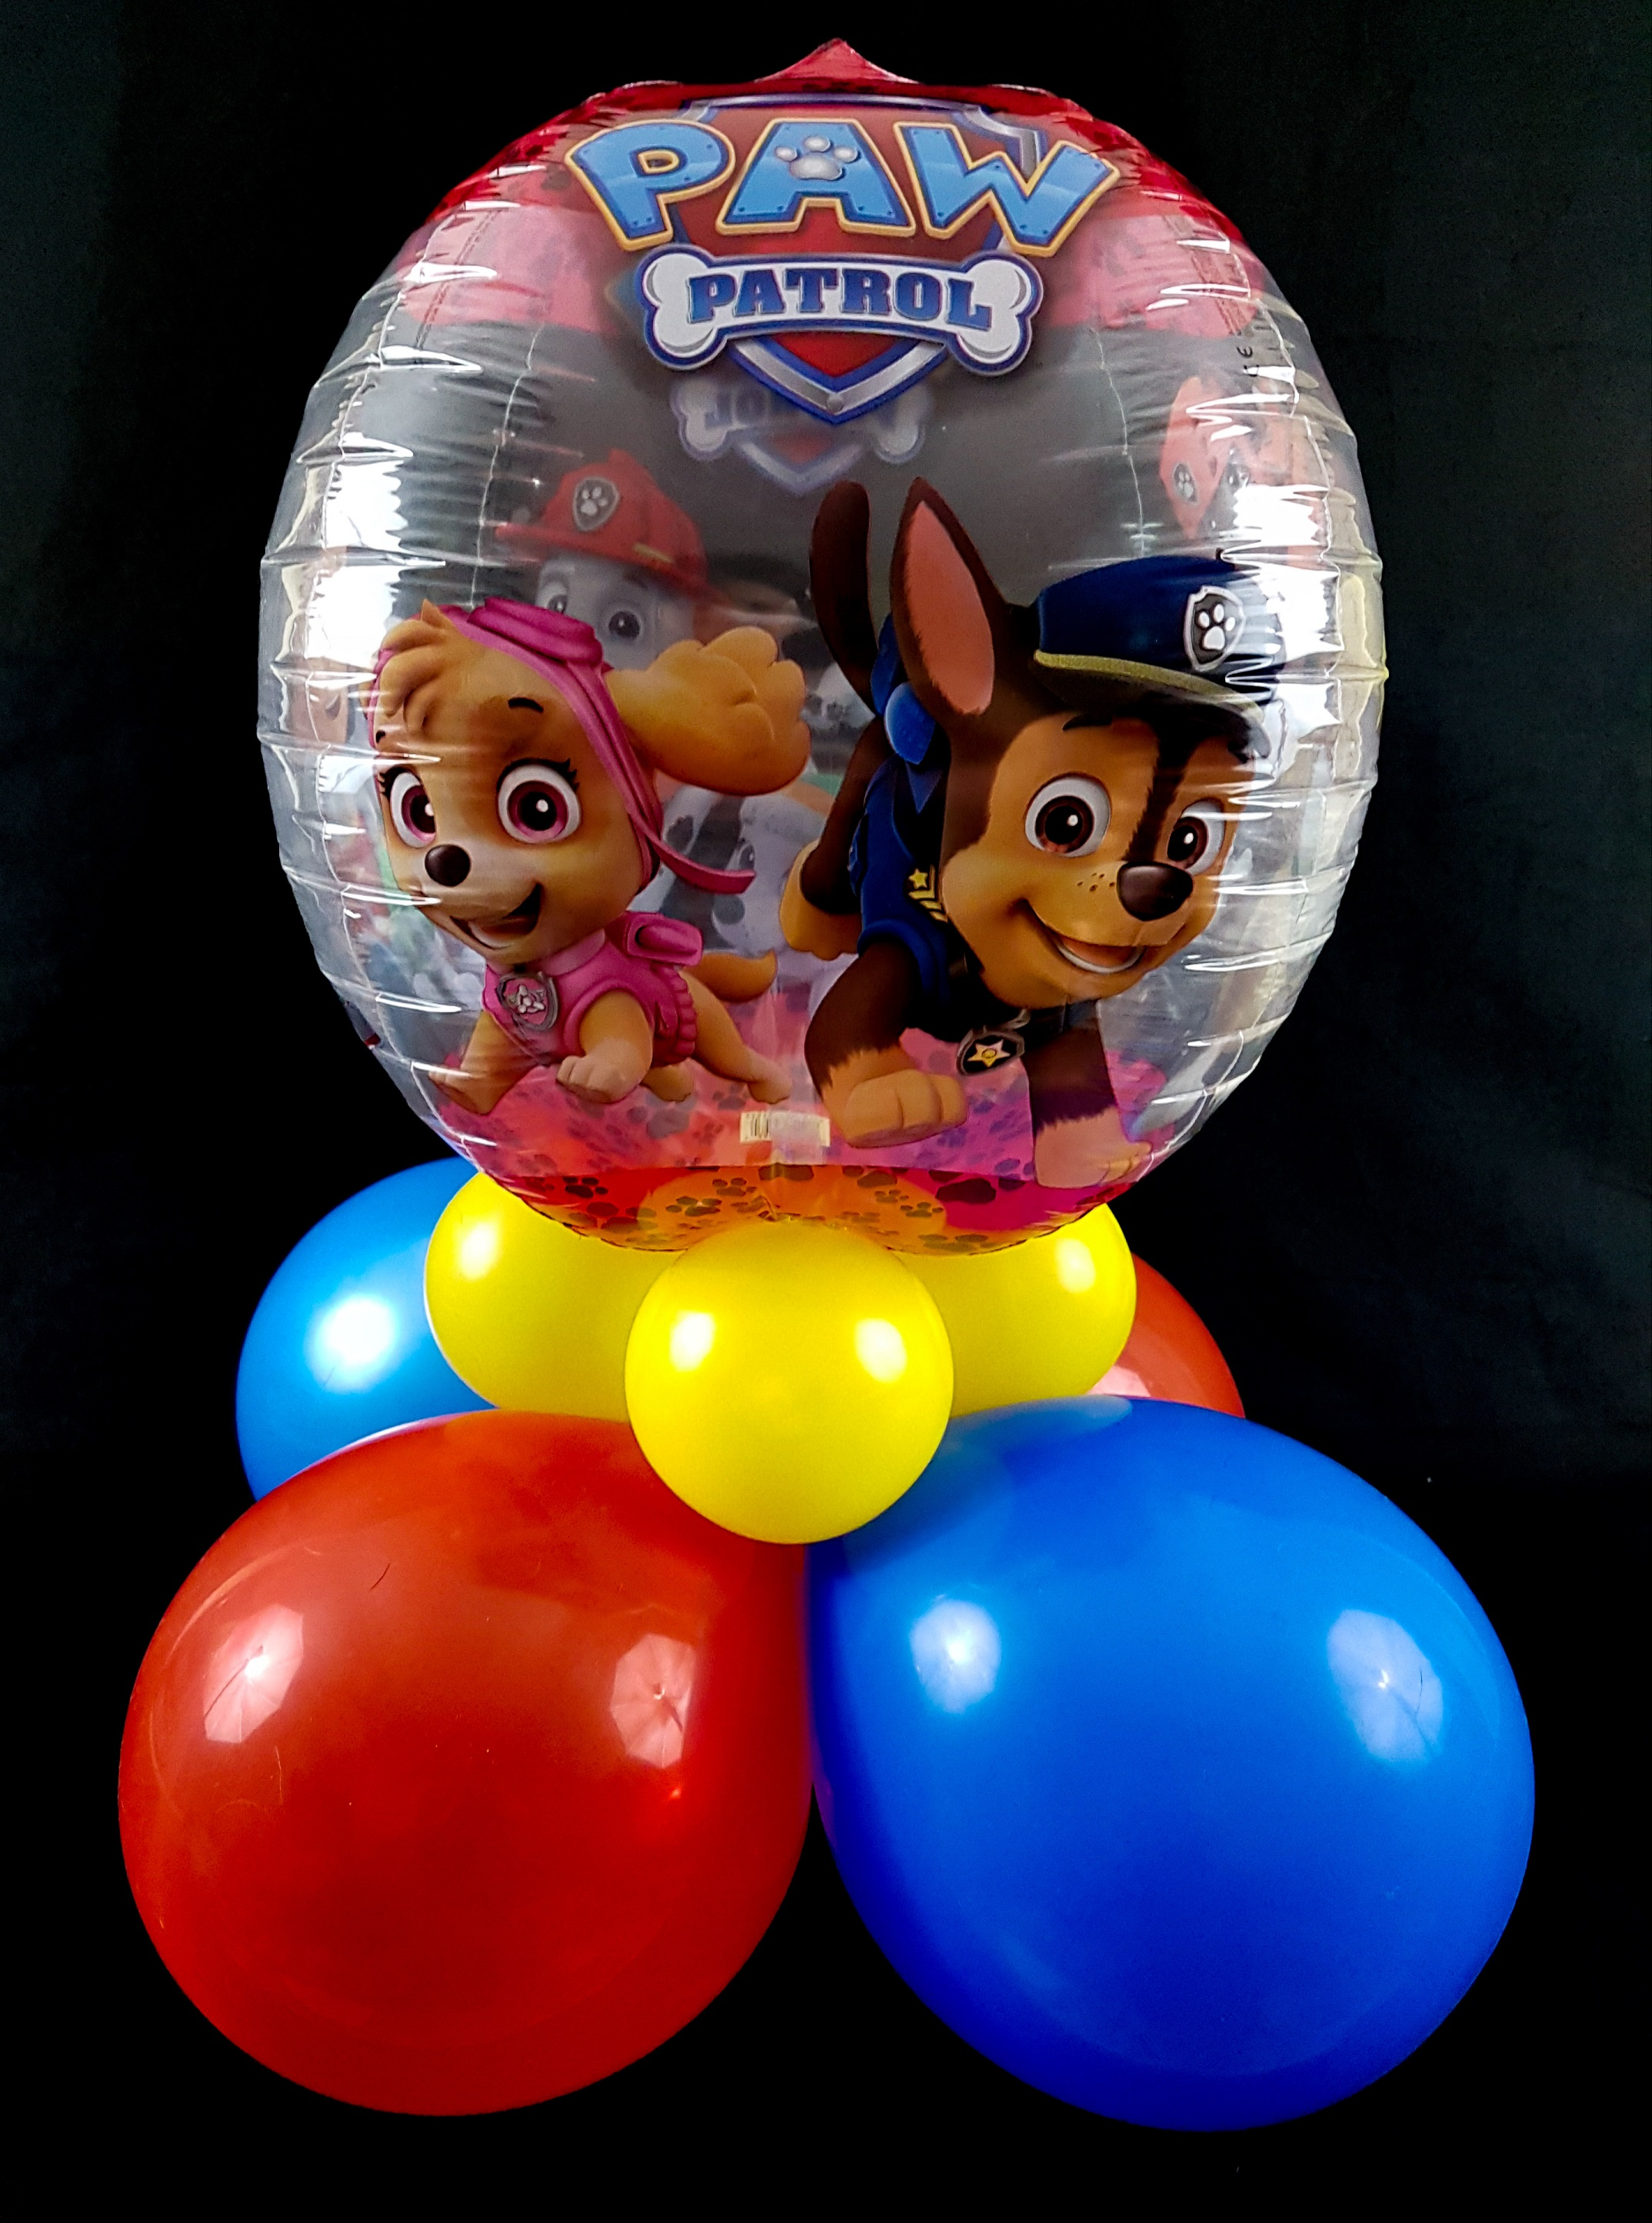 Paw patrol centerpiece full of beans party rentals